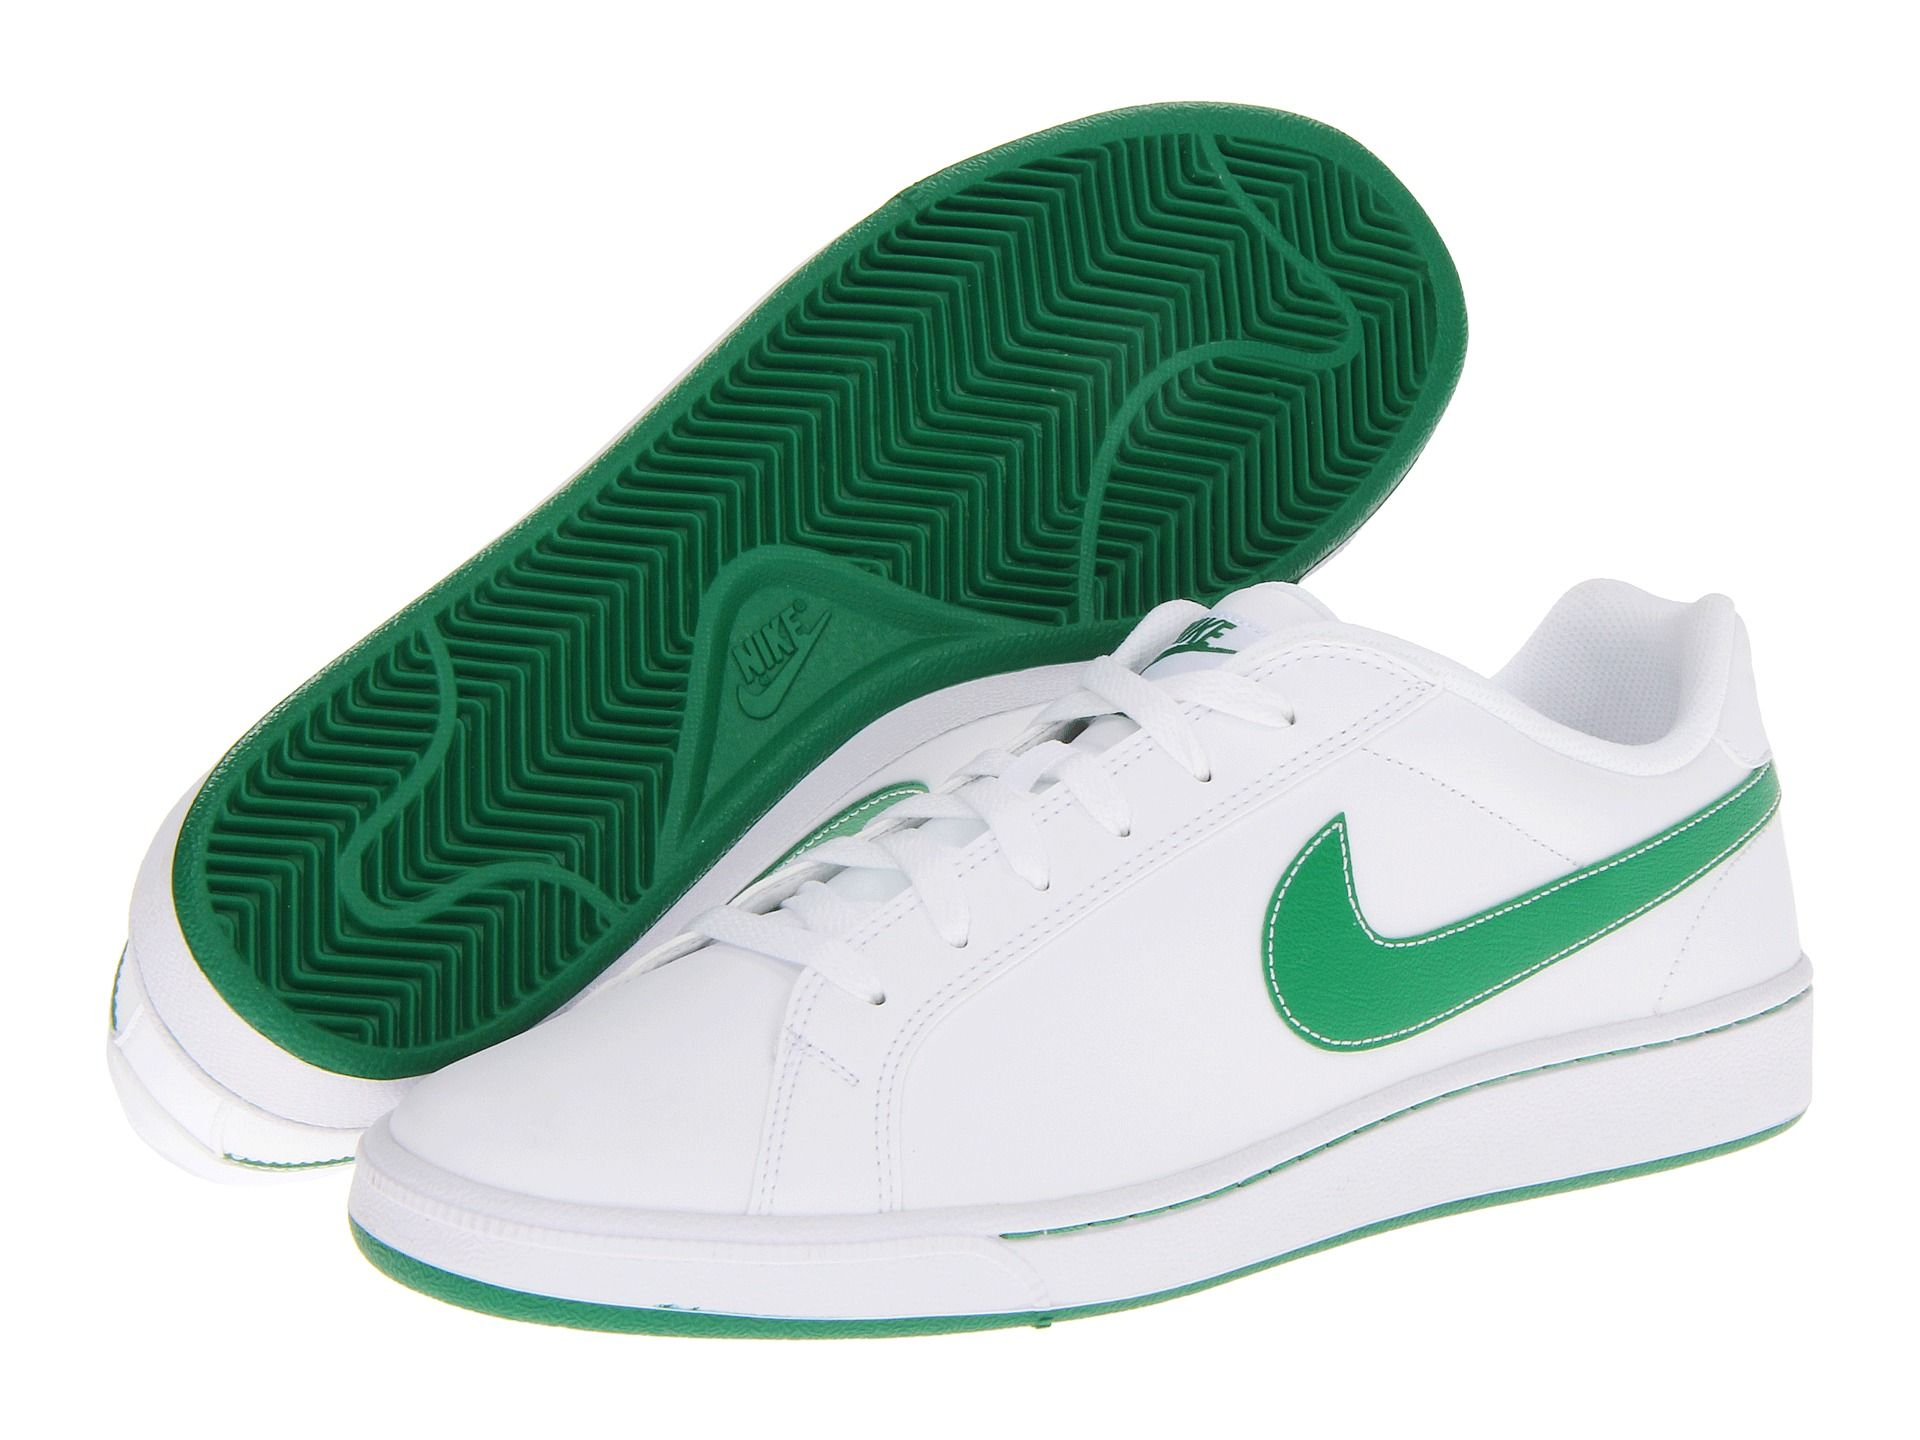 Nike Court Majestic Leather White Pine Green Pine Green, Nike, Shoes, White